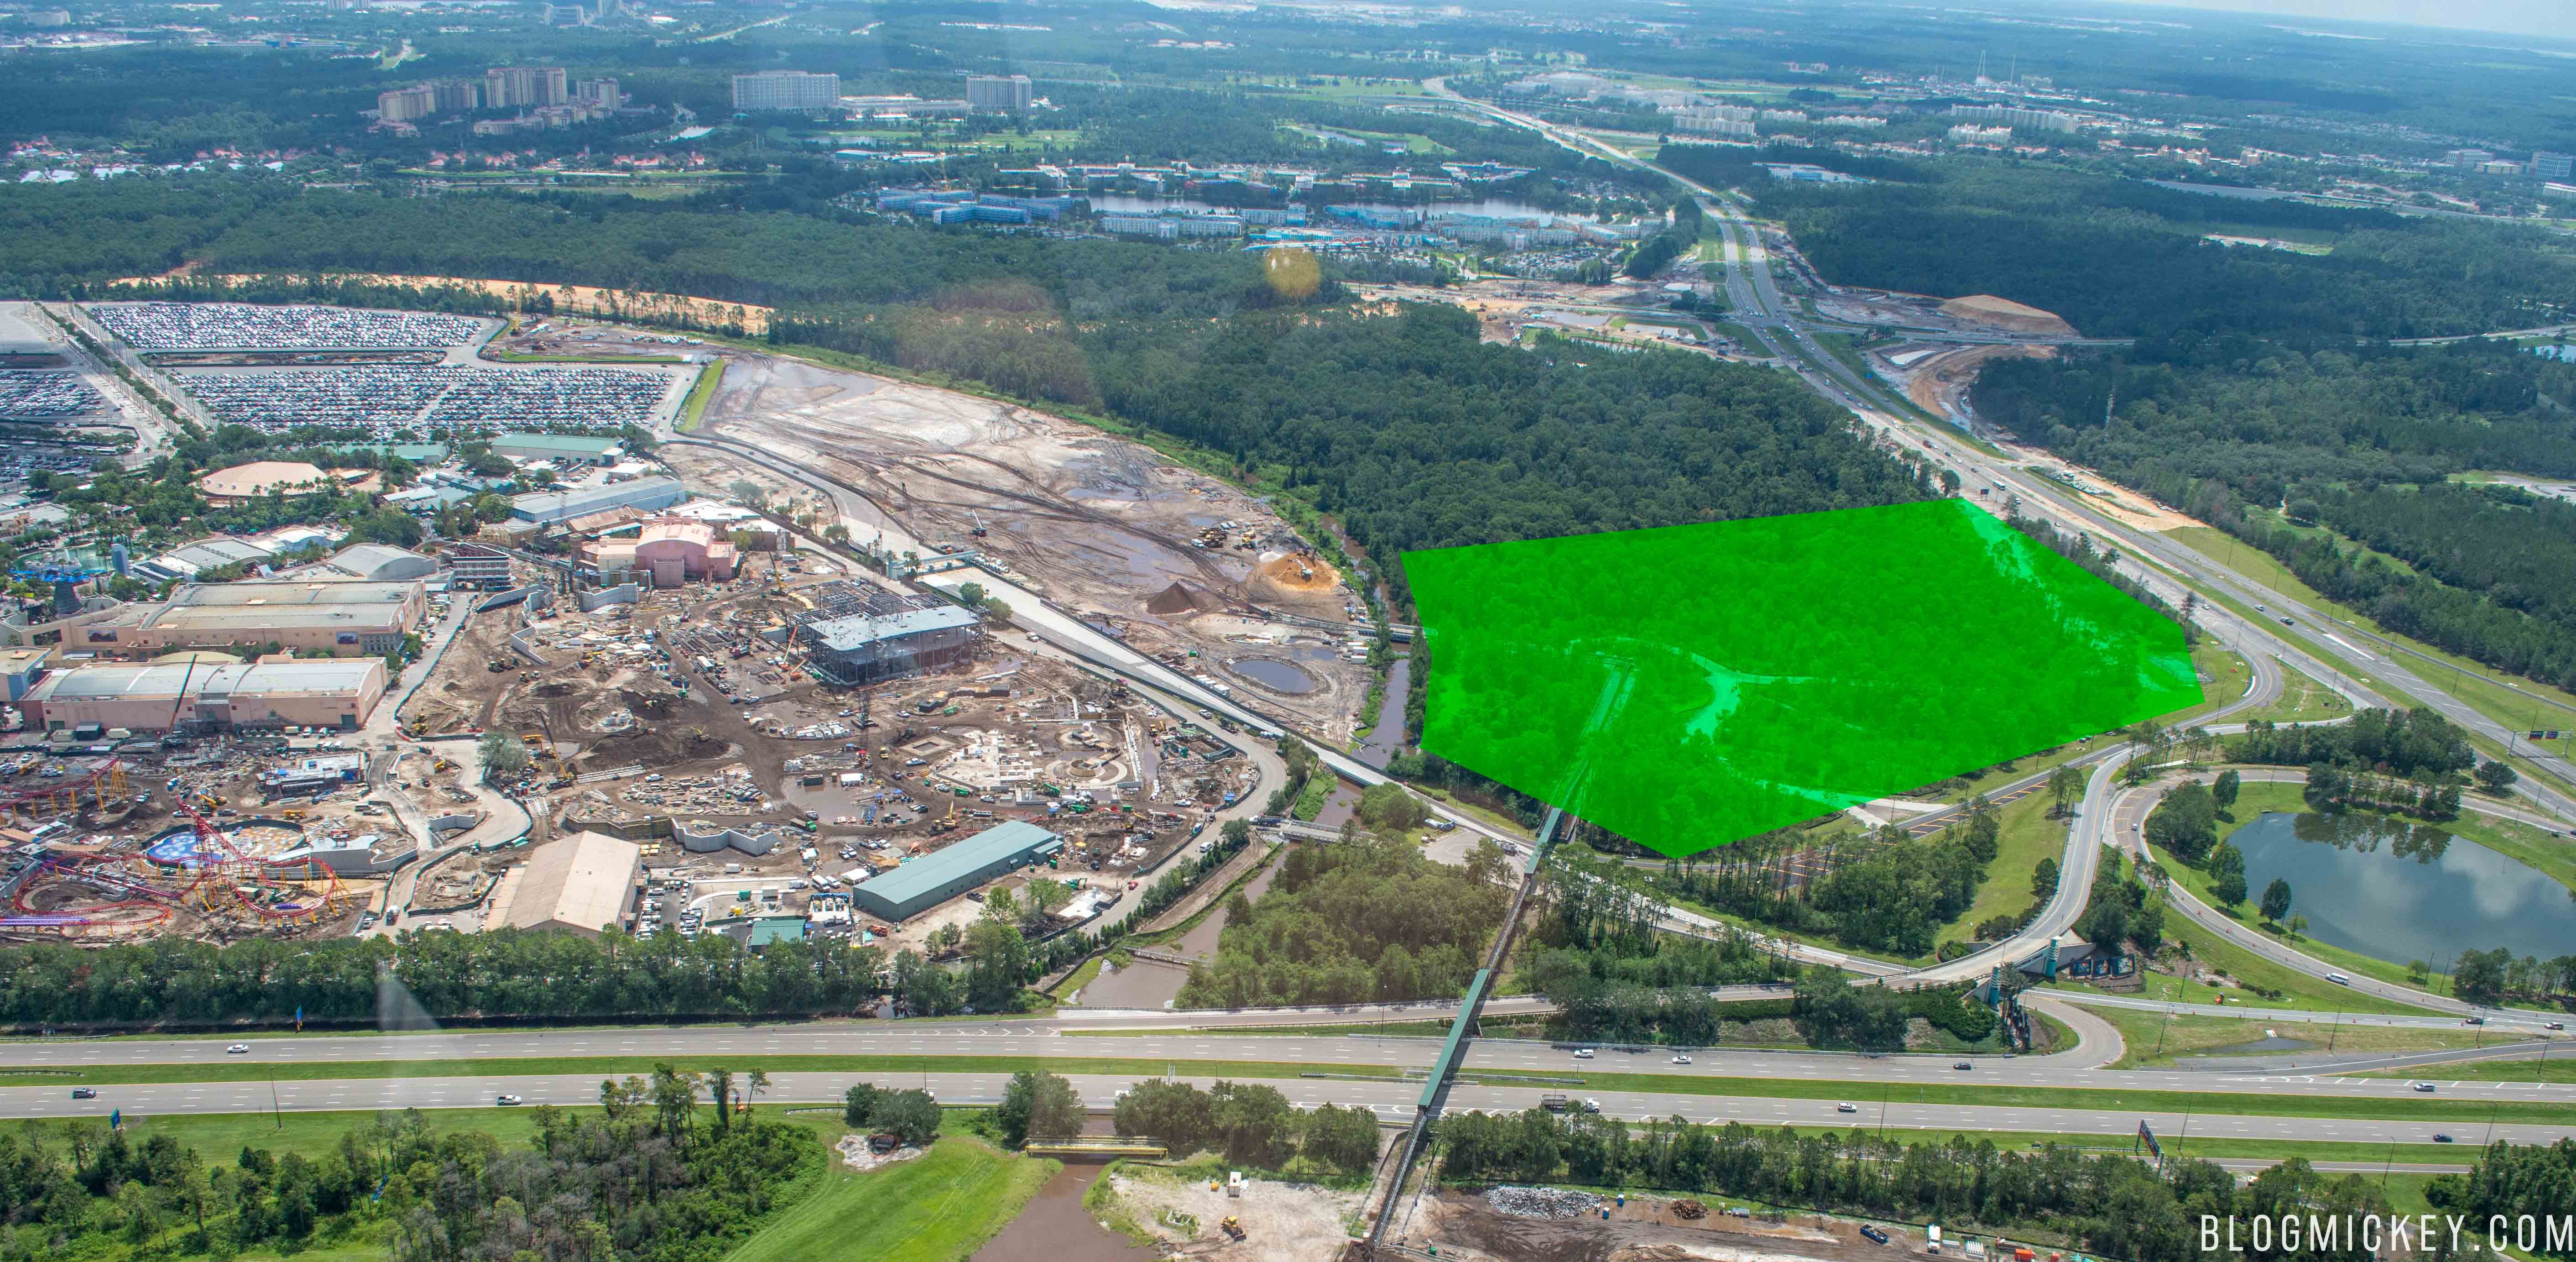 BREAKING: Permits Filed for Star Wars Hotel at Disney's Hollywood Studios - Blog Mickey